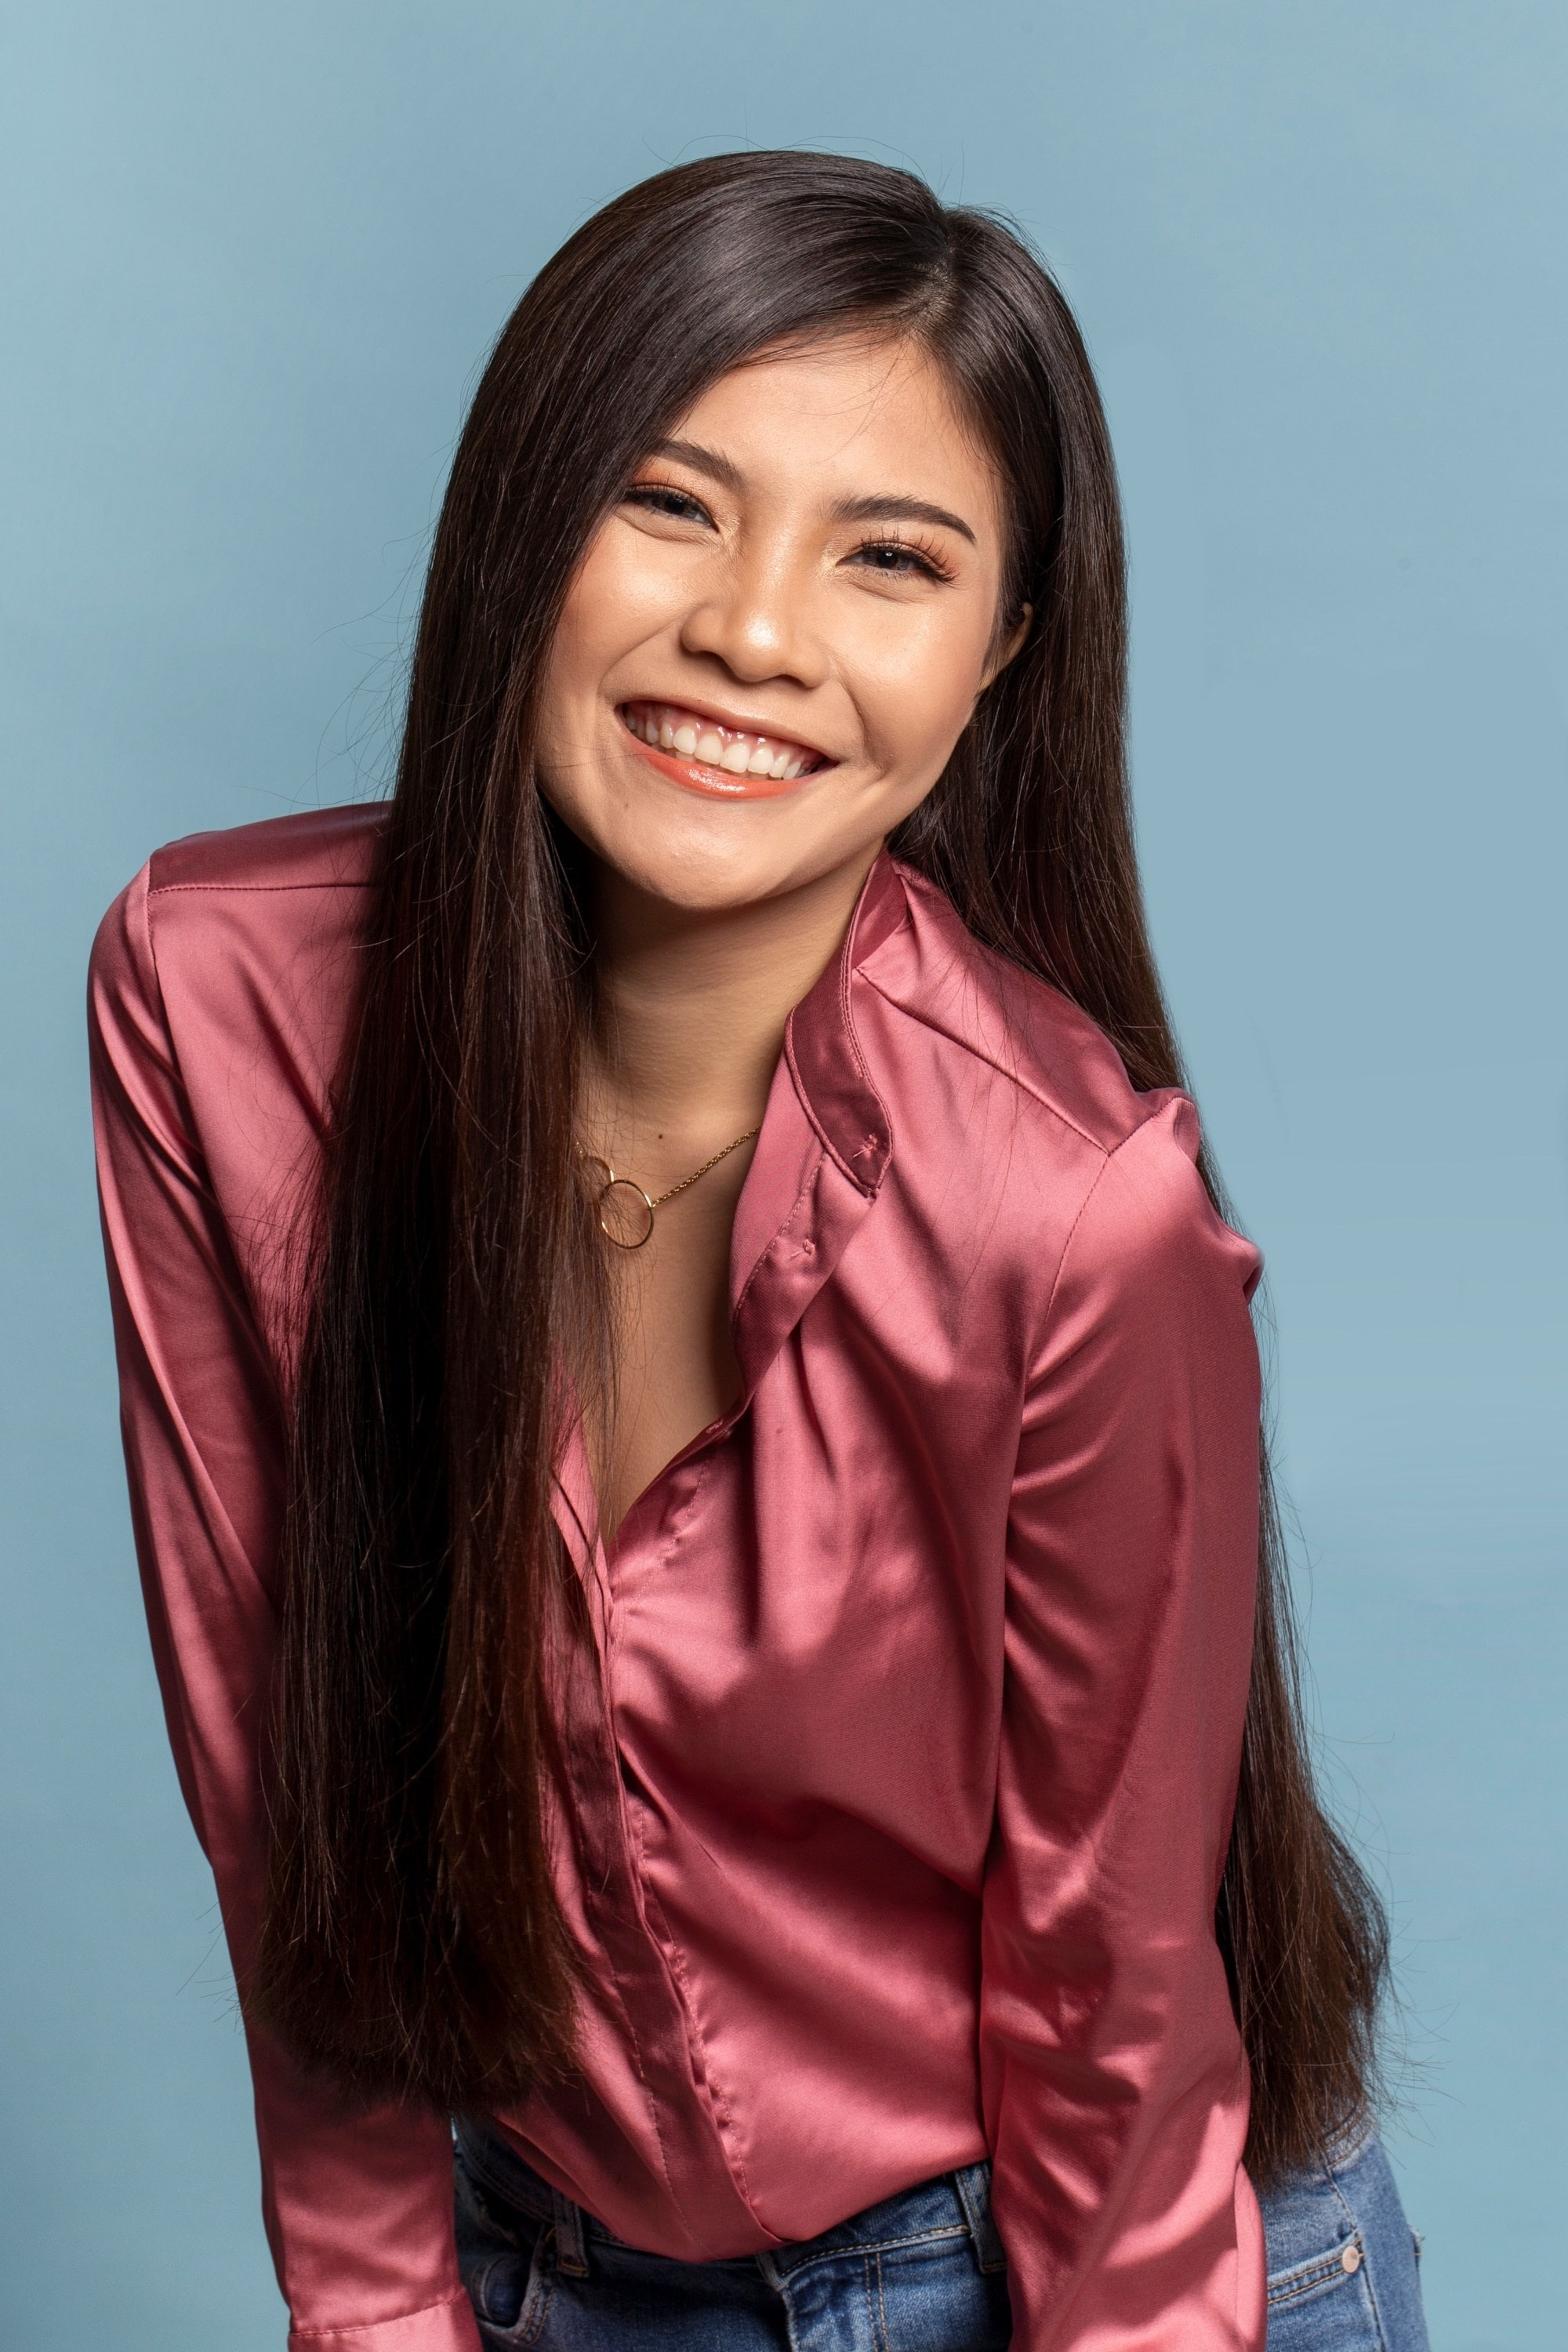 Cellophane hair Asian woman with long dark hair smiling